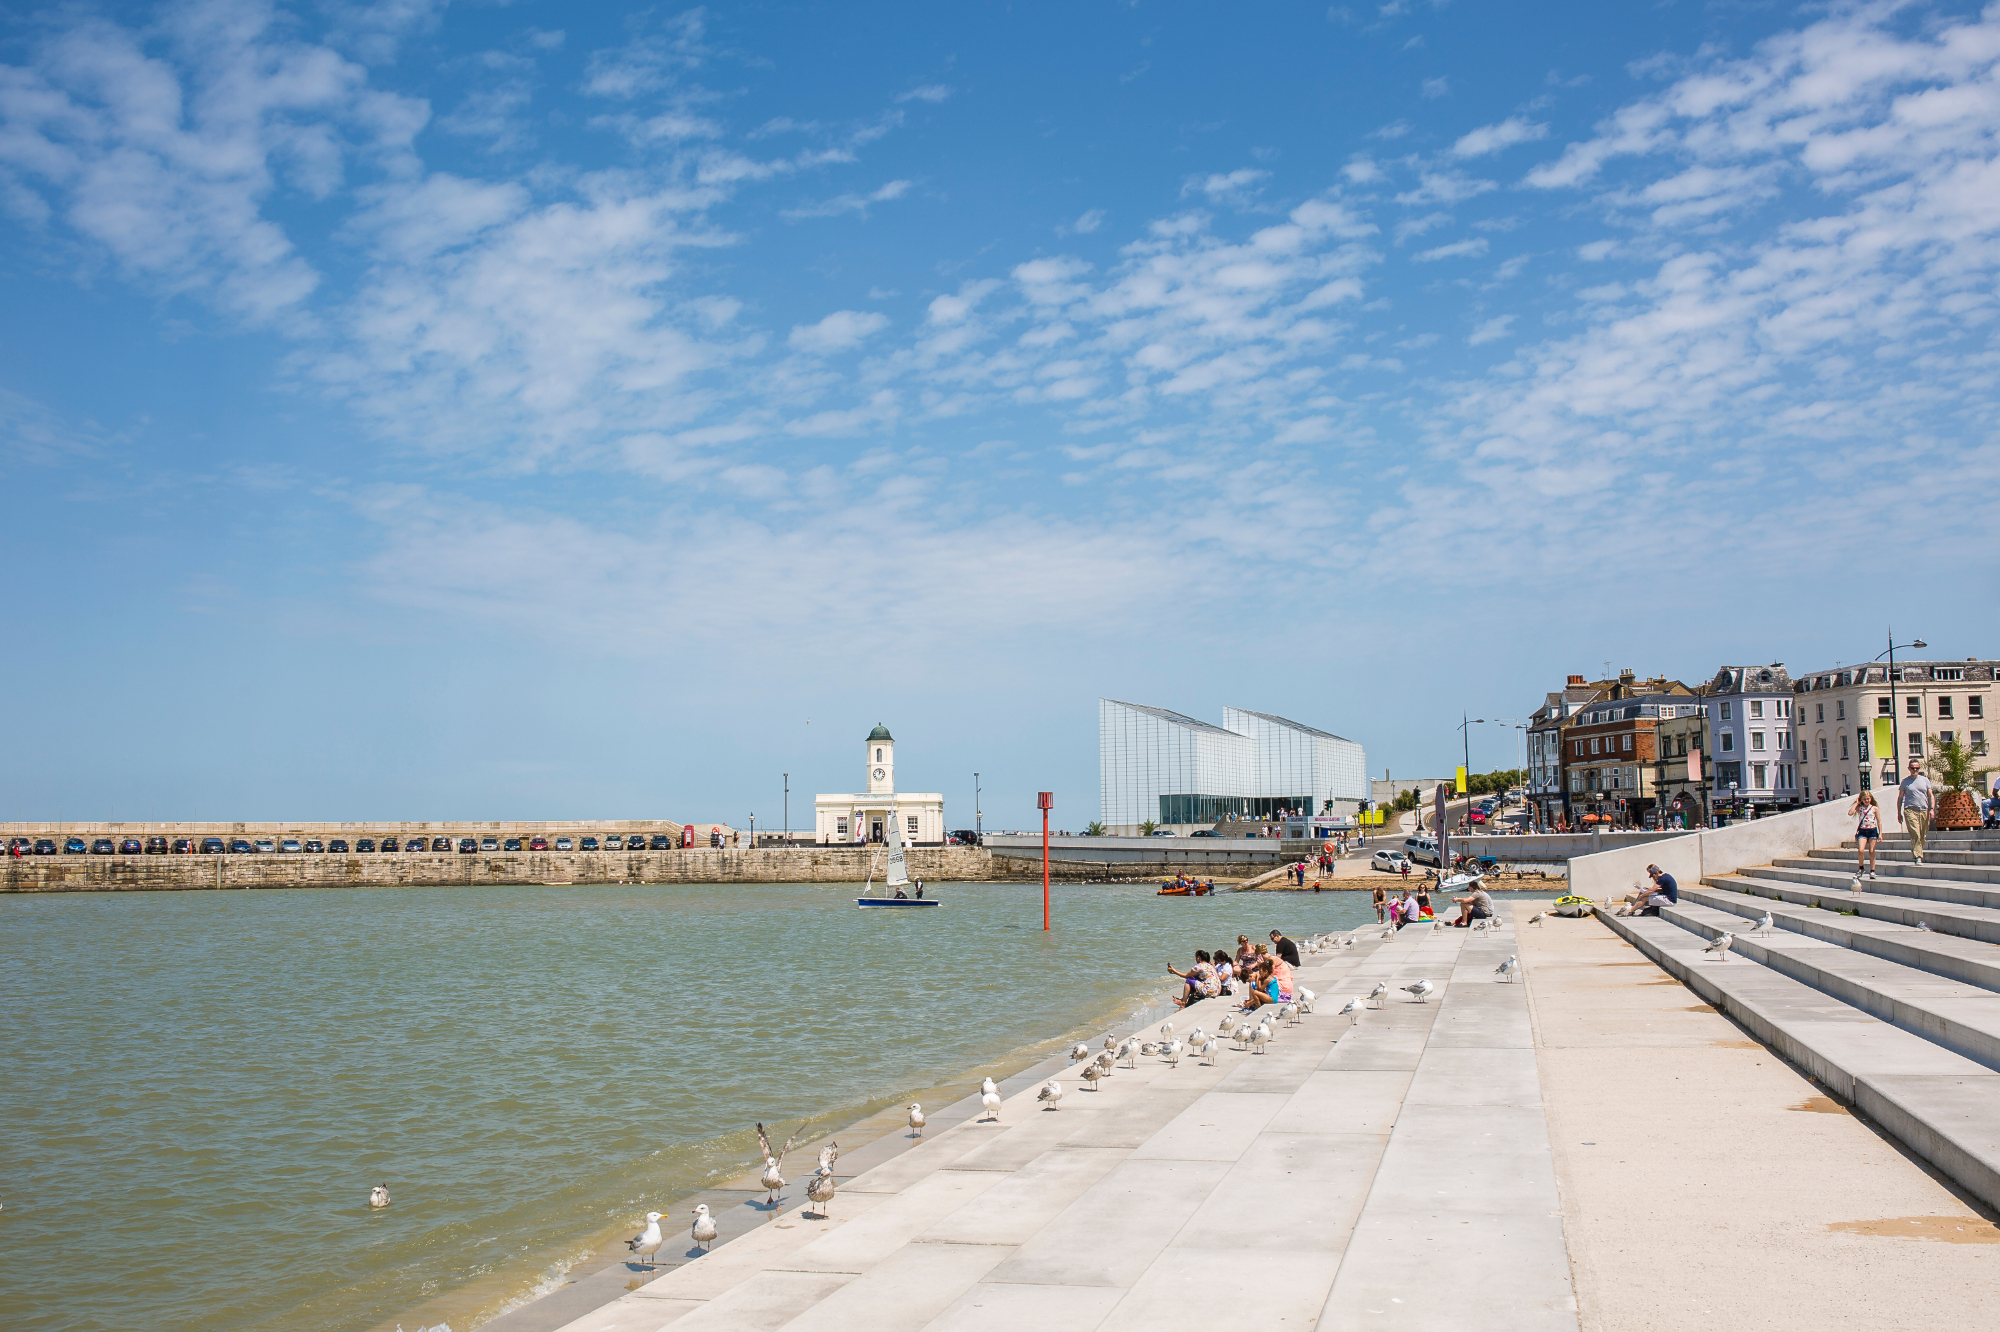 Margate harbour and Turner Contemporary